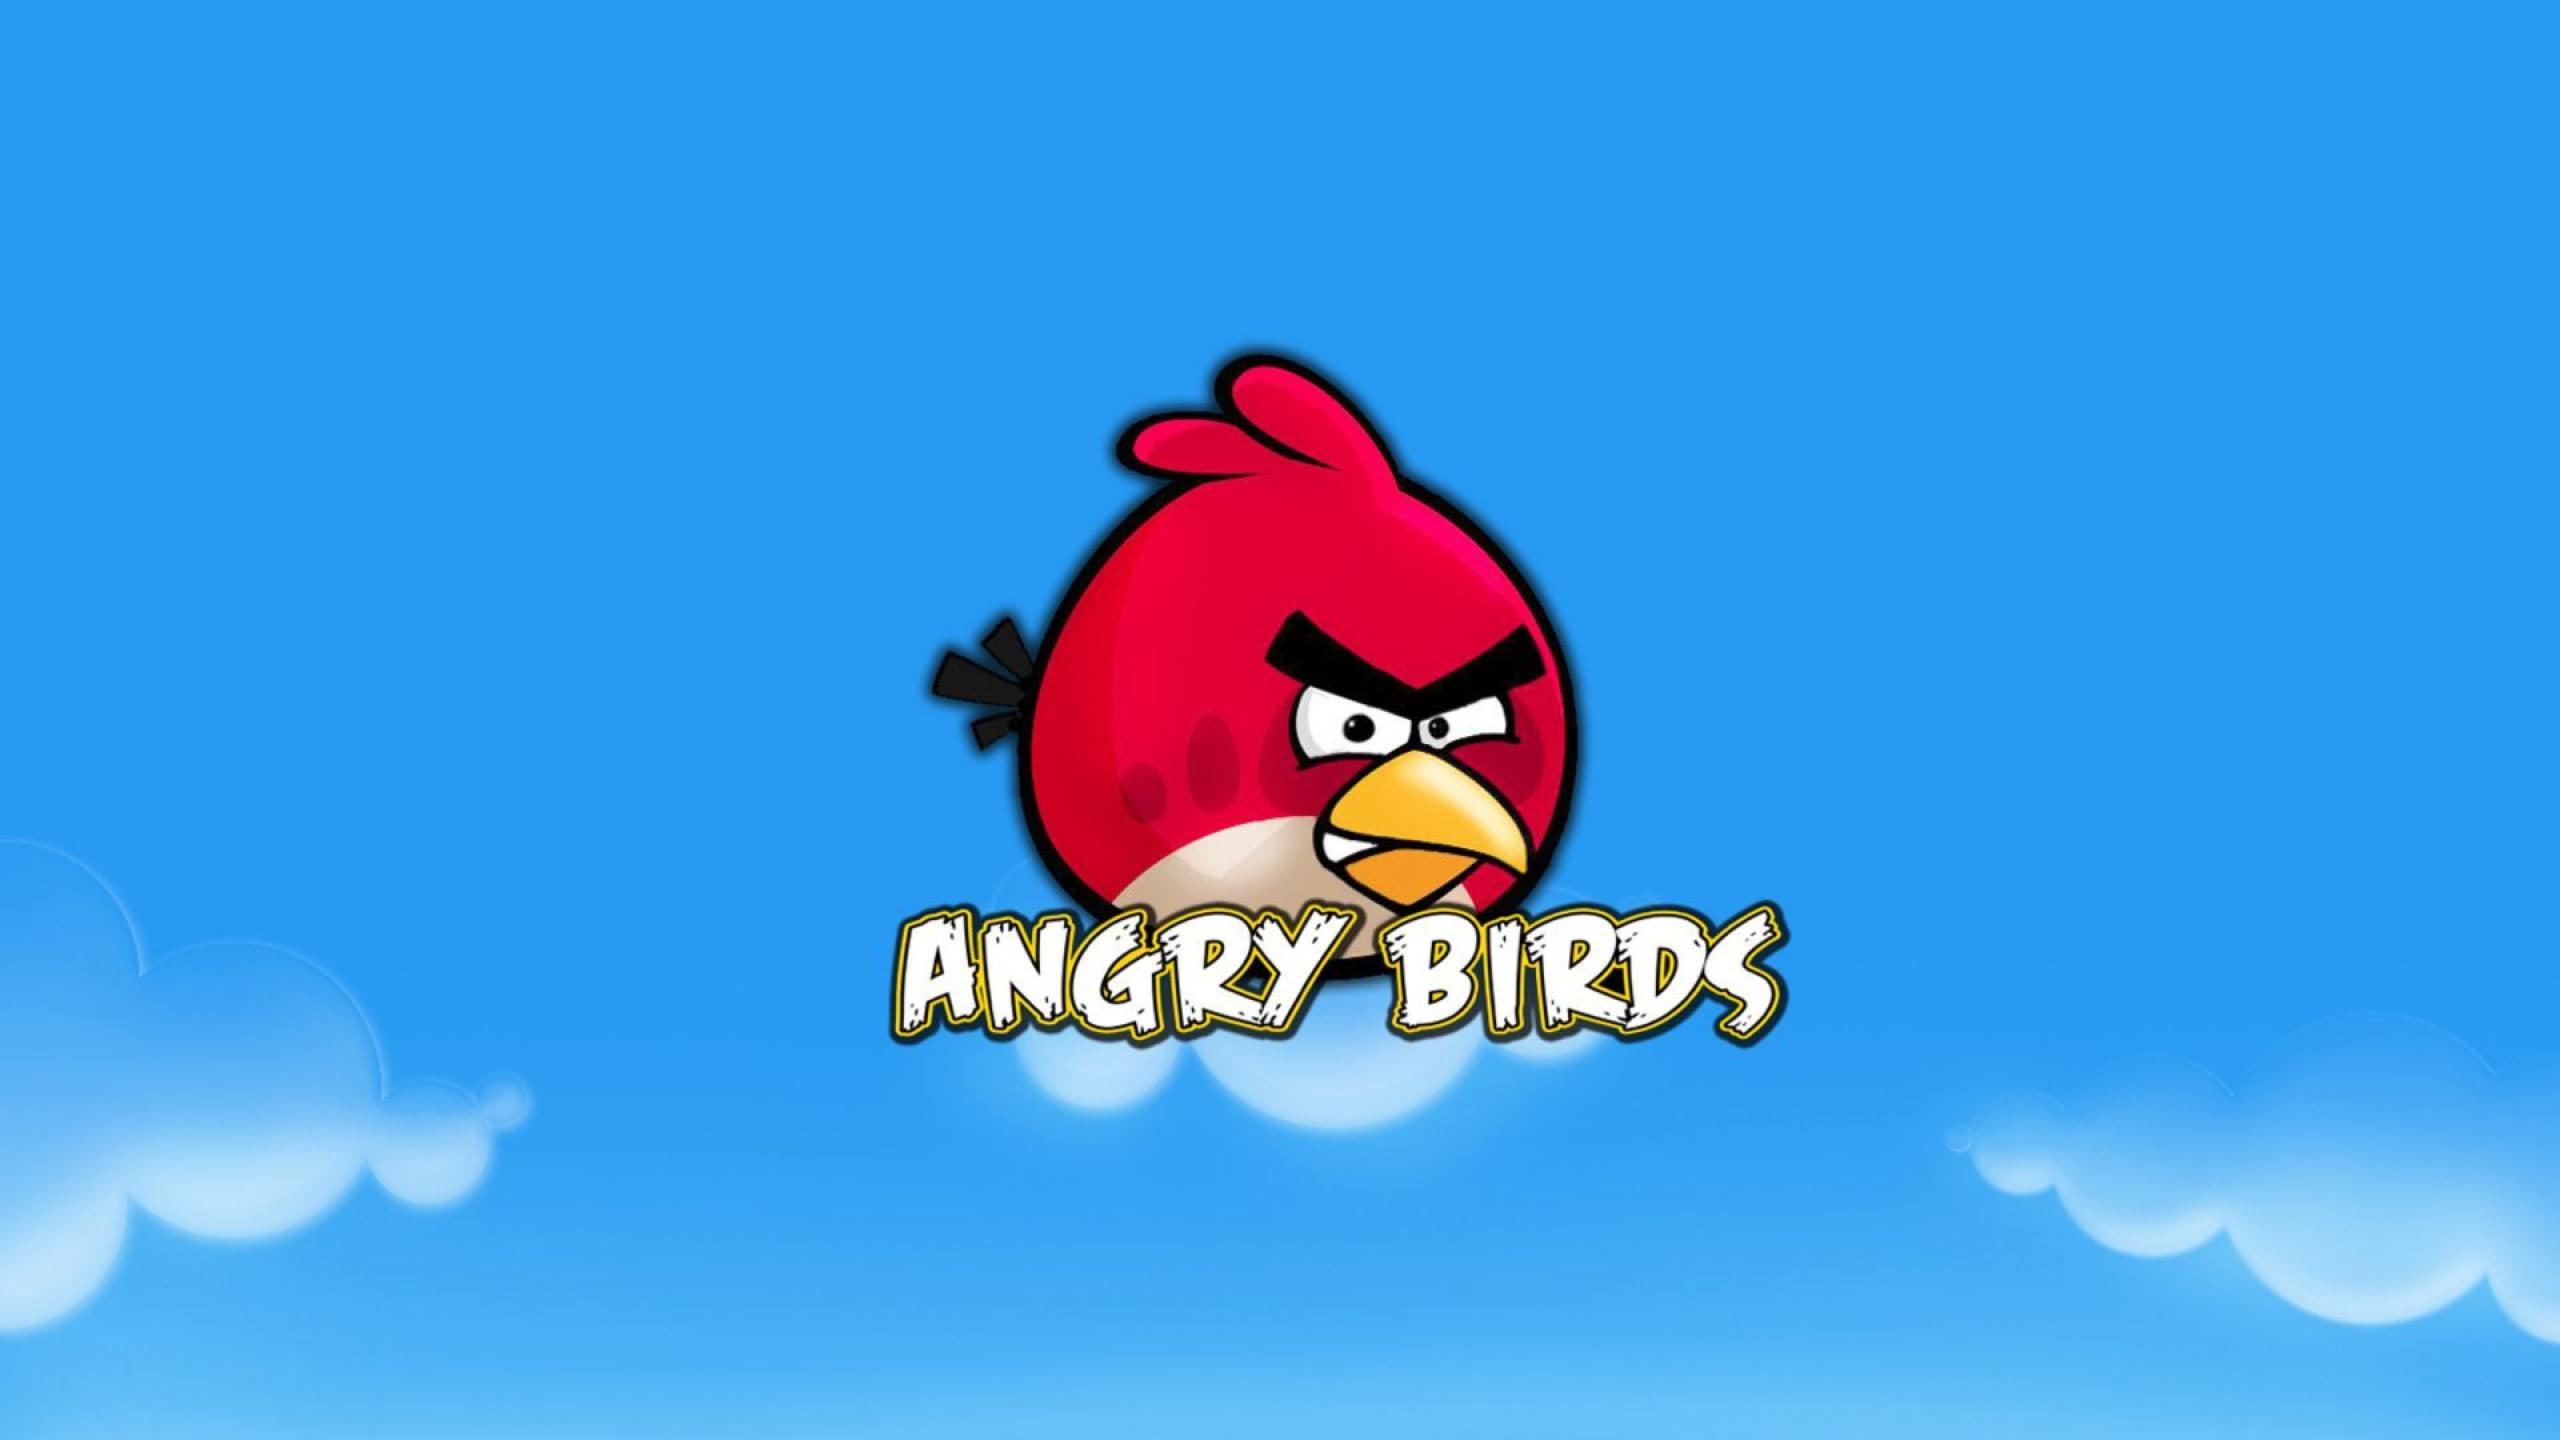 red bird hd wallpaper - angry birds wallpapers